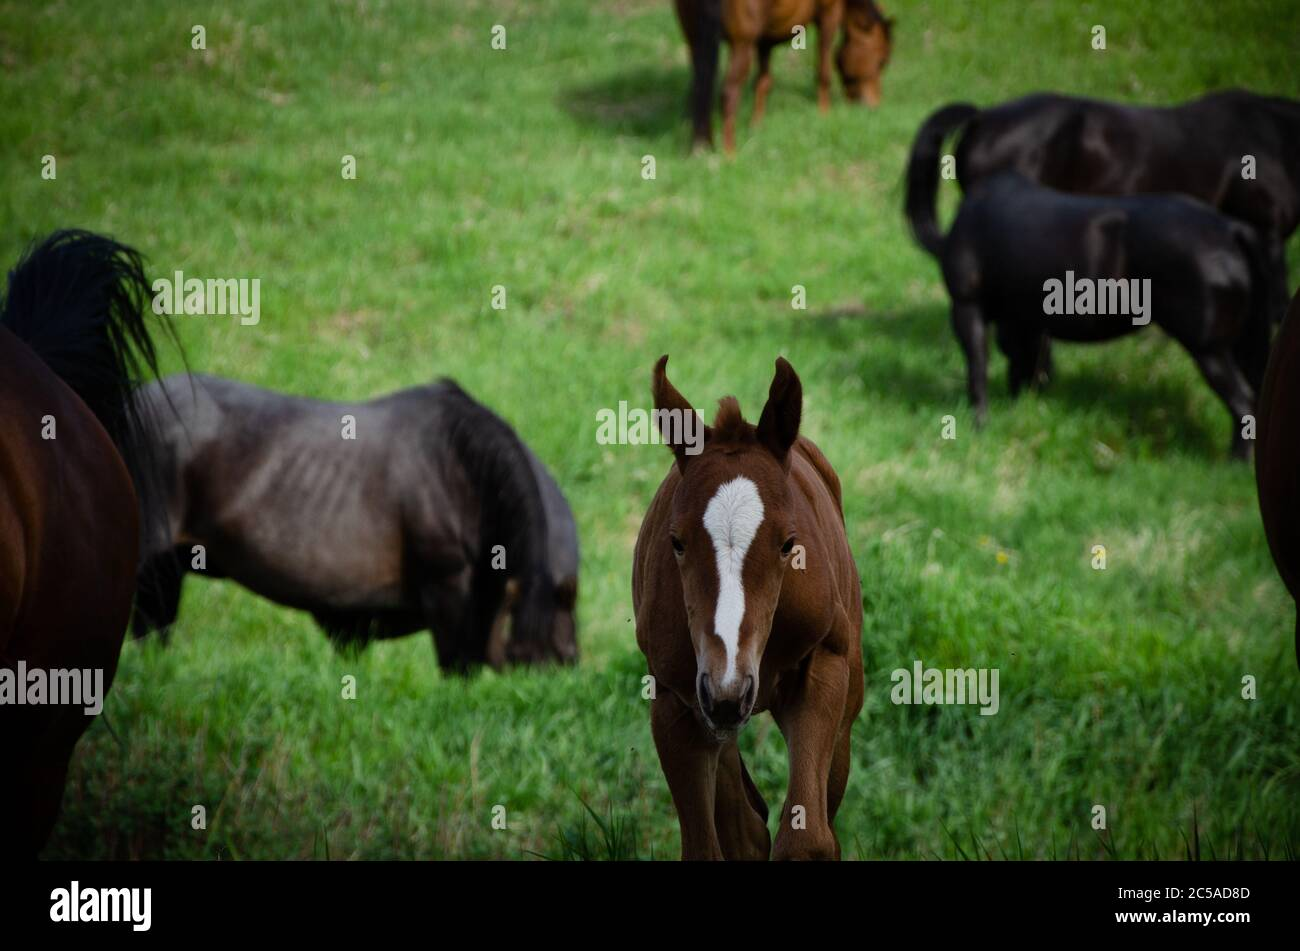 The Cute Baby Brown Horse With A White Mark On It S Forehead In The Field Stock Photo Alamy